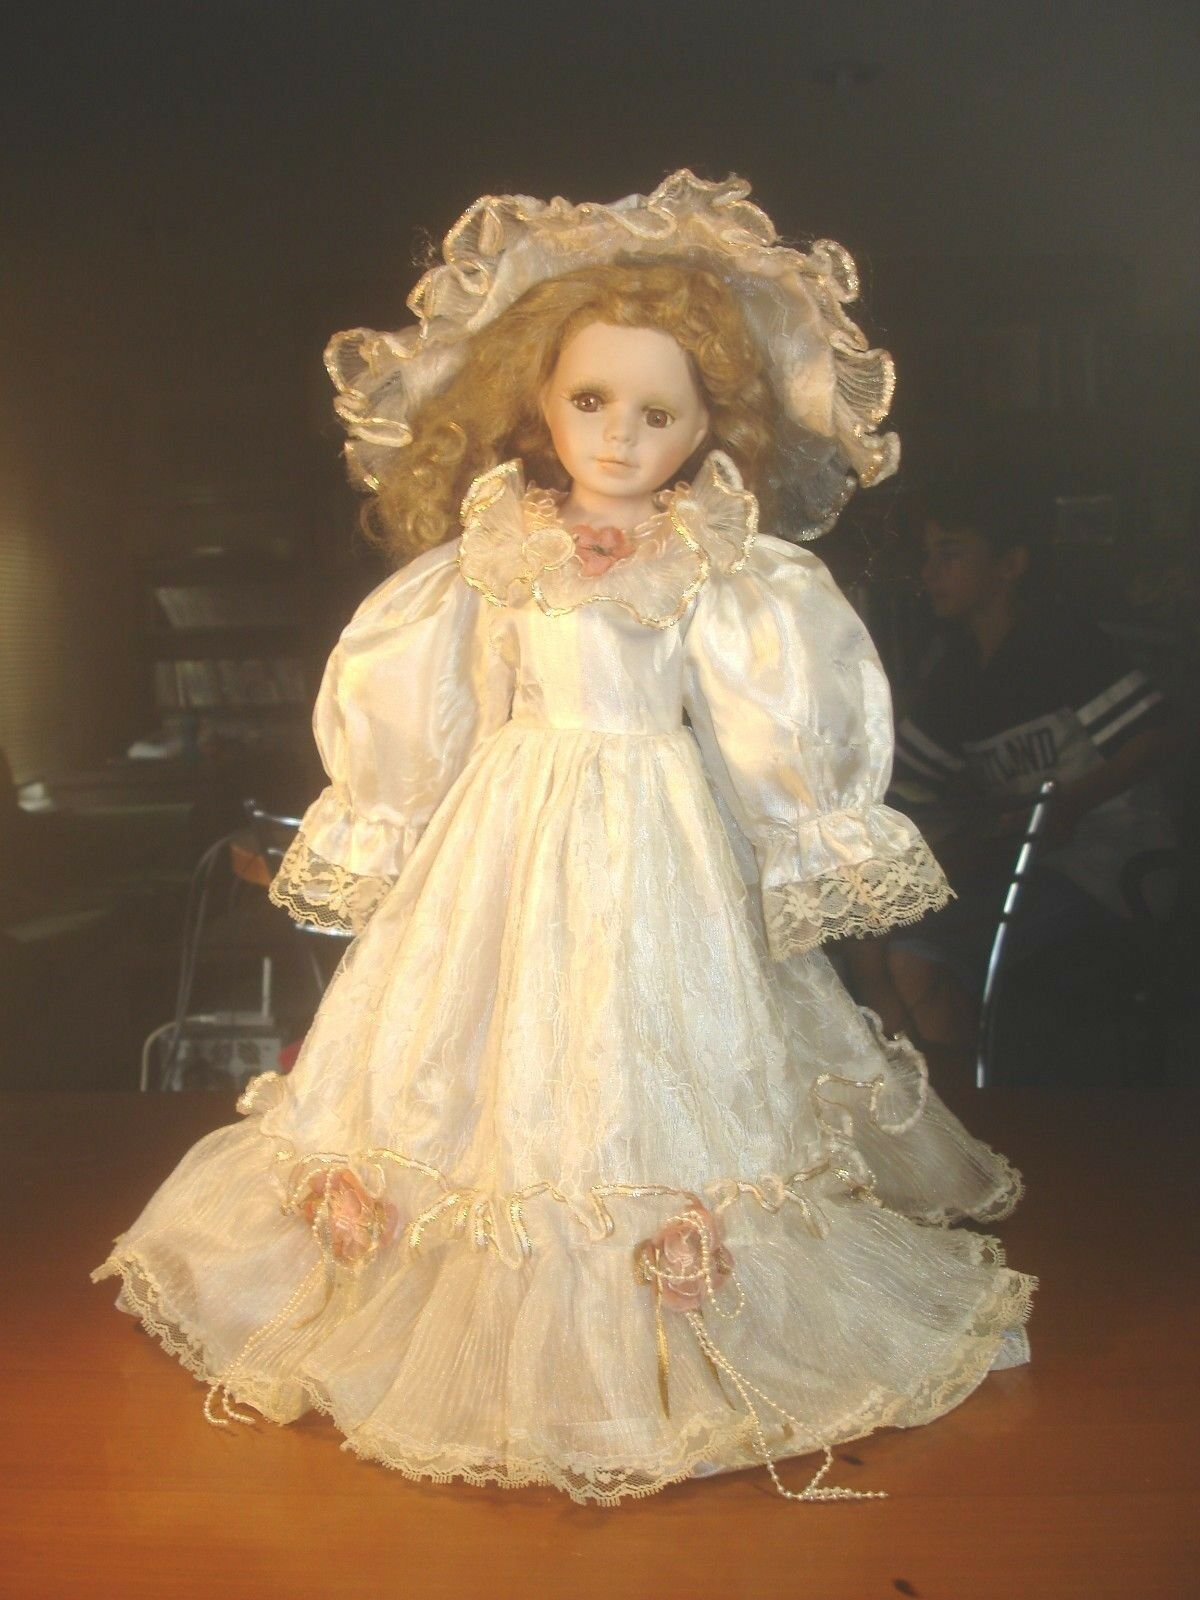 VINTAGE COLLECTIBLE PORCELAIN DOLL WITH bianca DRESS 42 cm 16.5 in. FROM GREECE